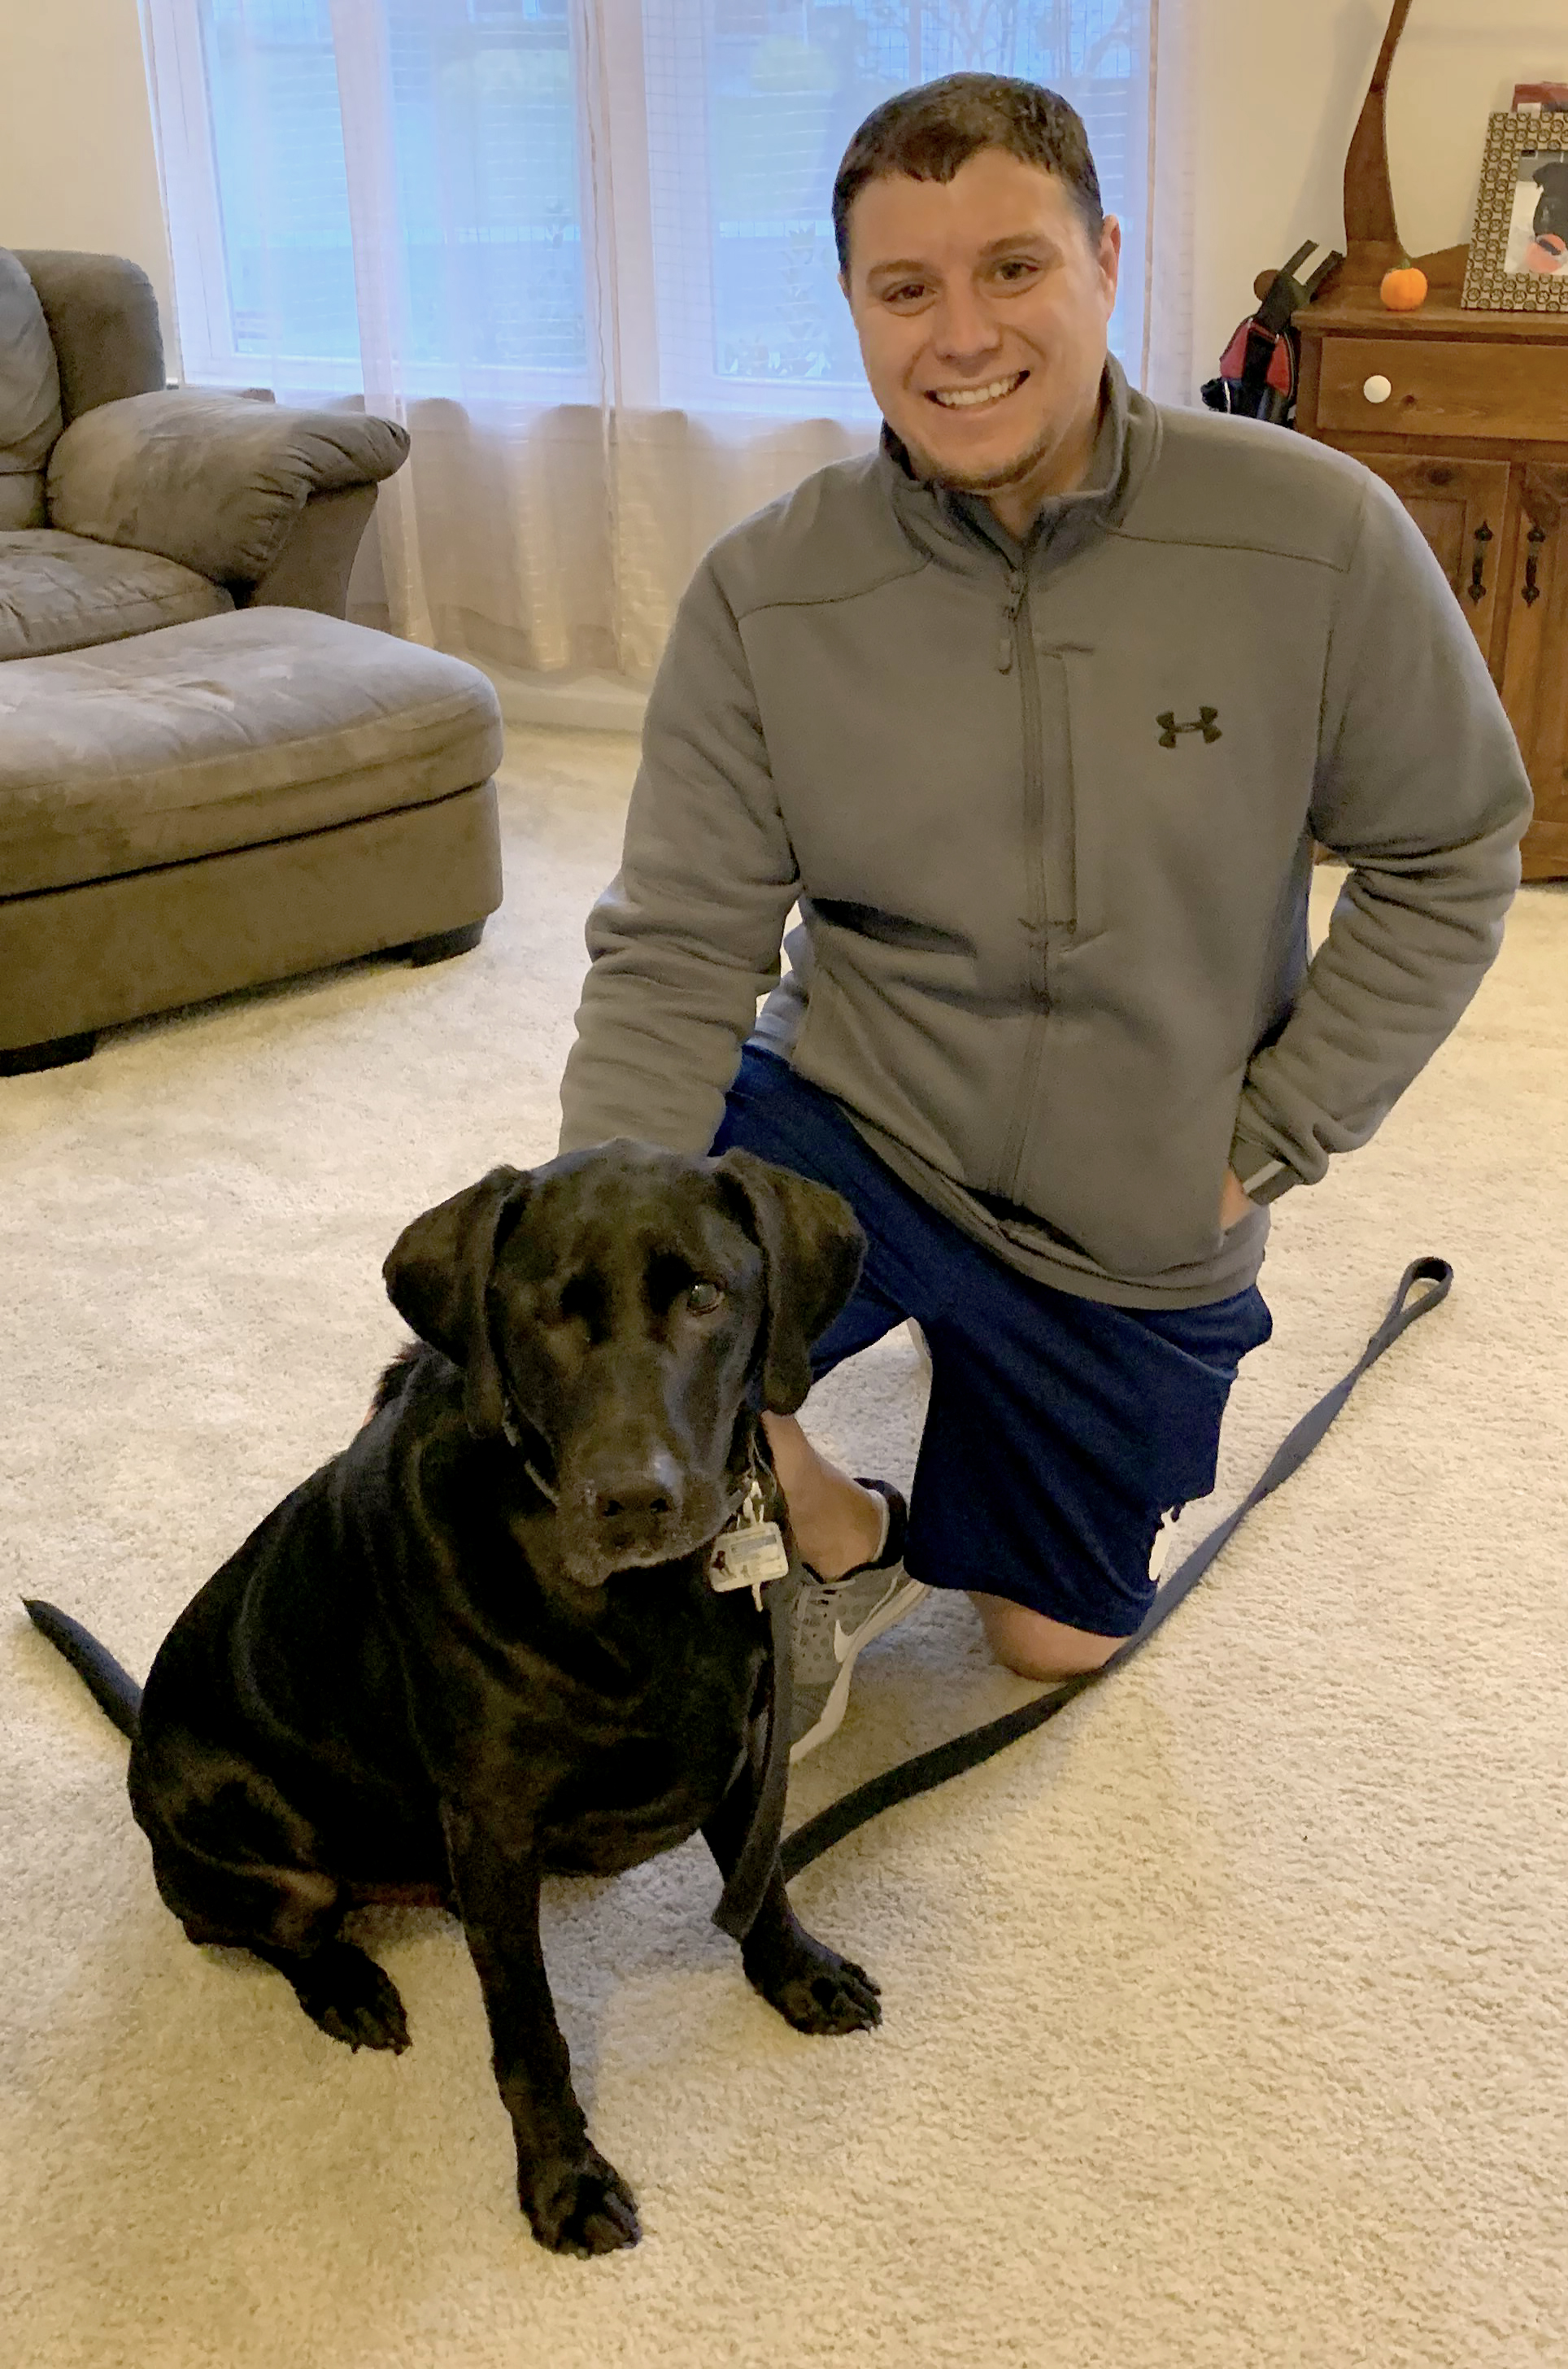 Ryan Marshall and his dog, Oakley